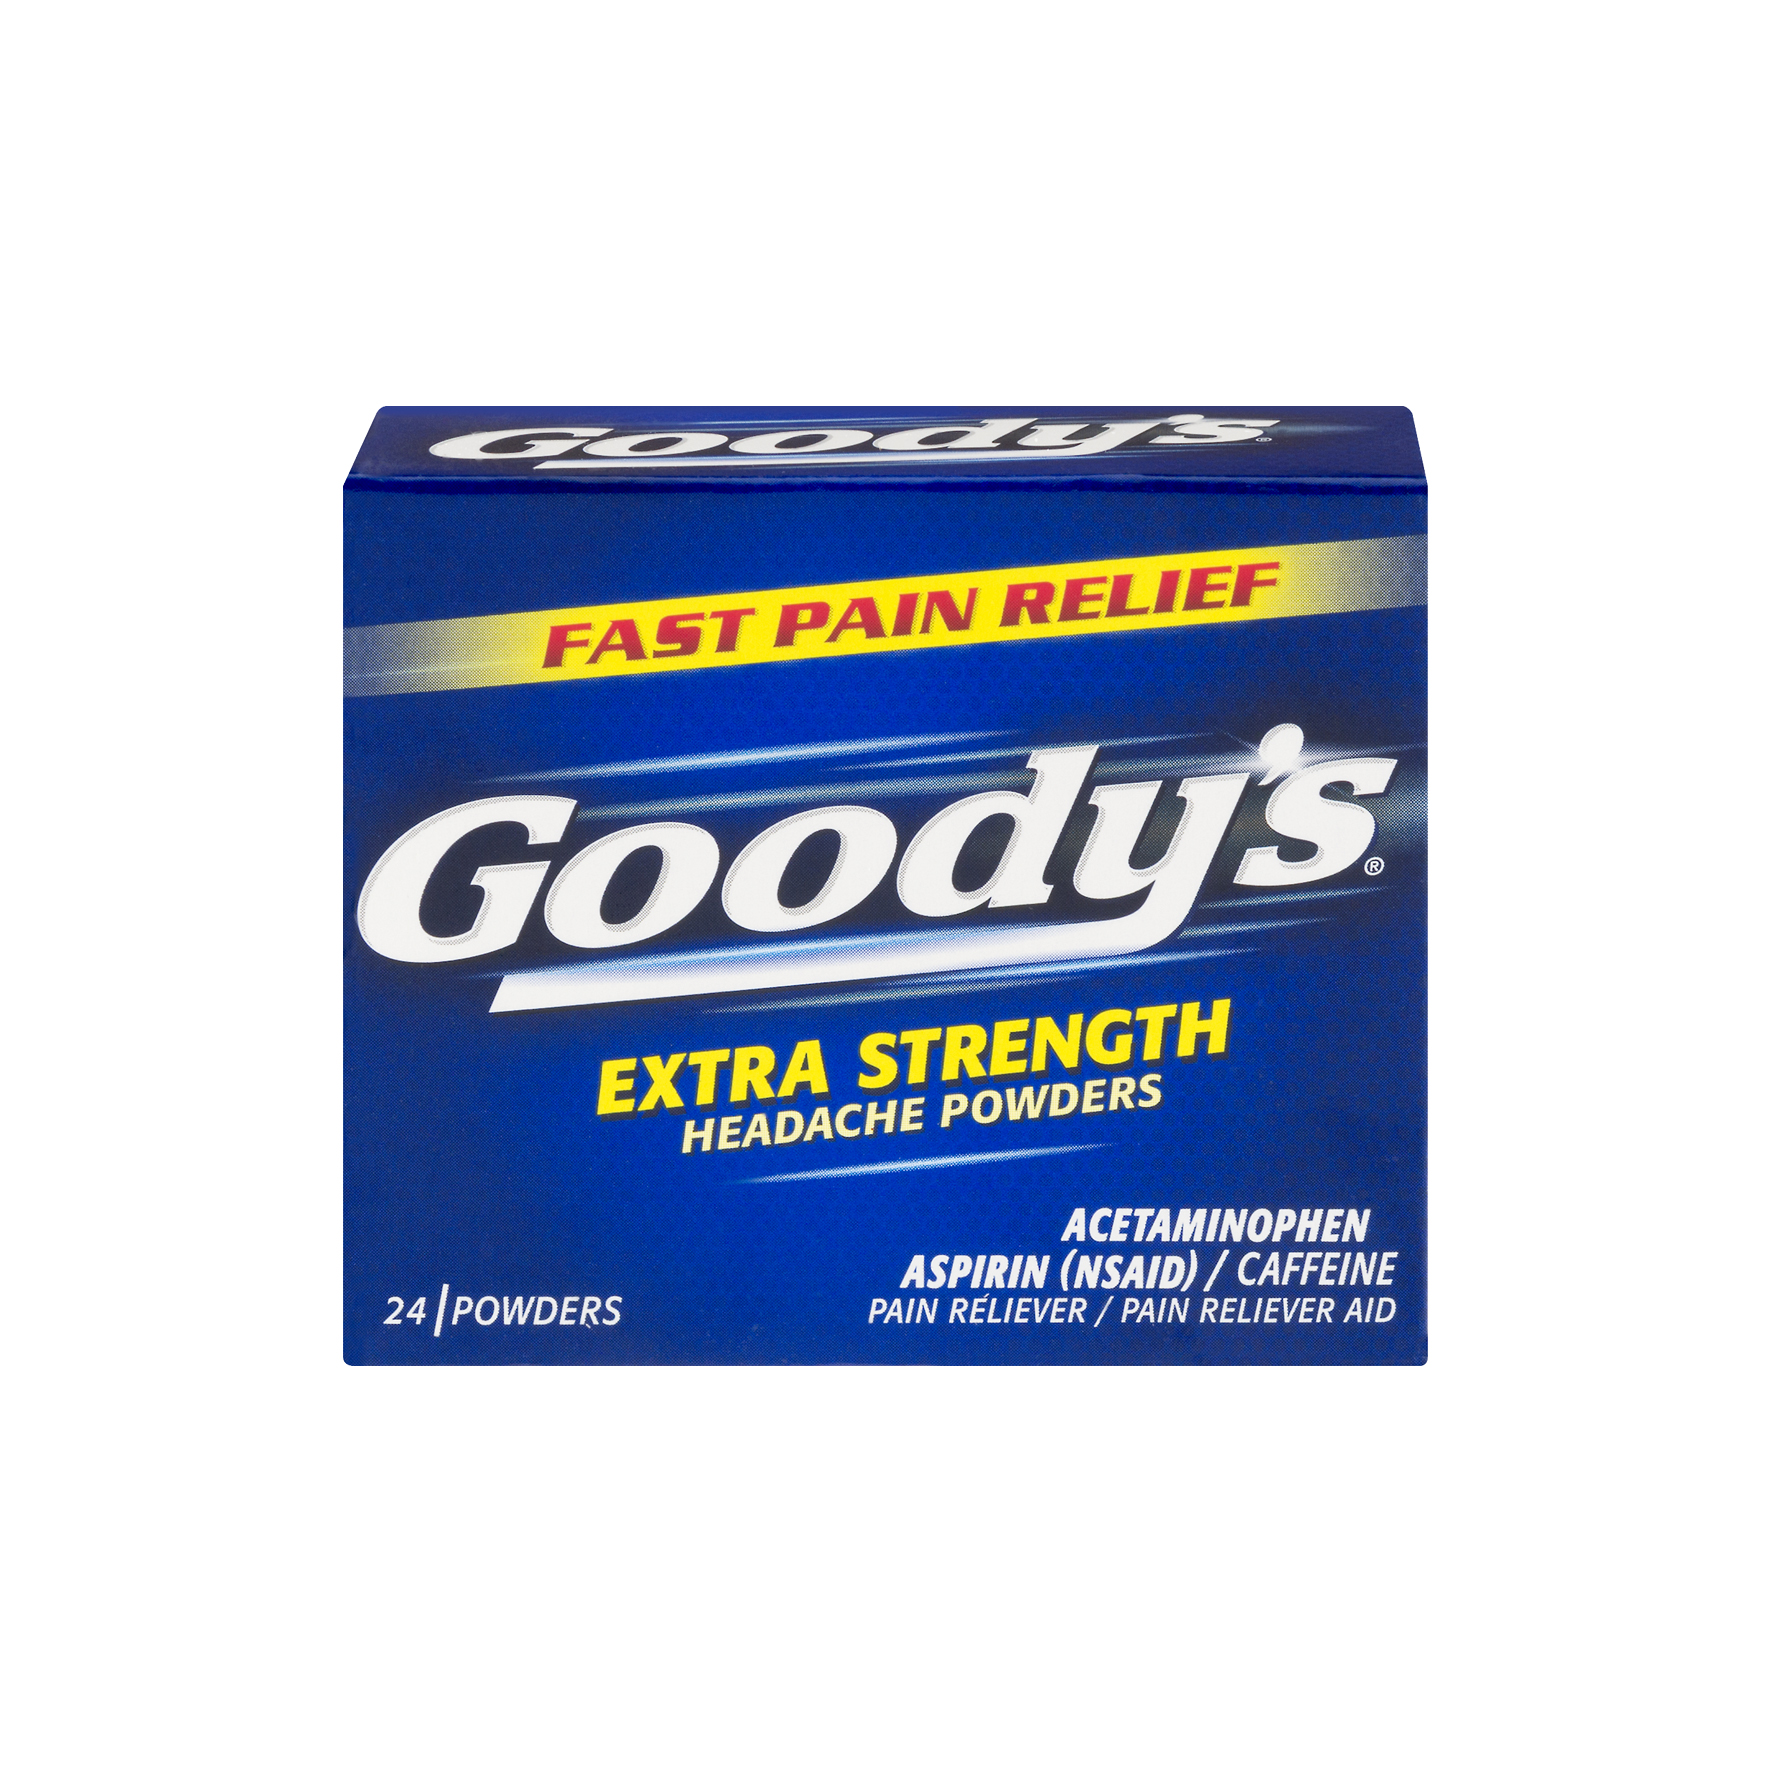 Goody's Extra Strength Headache Powders - 24 CT